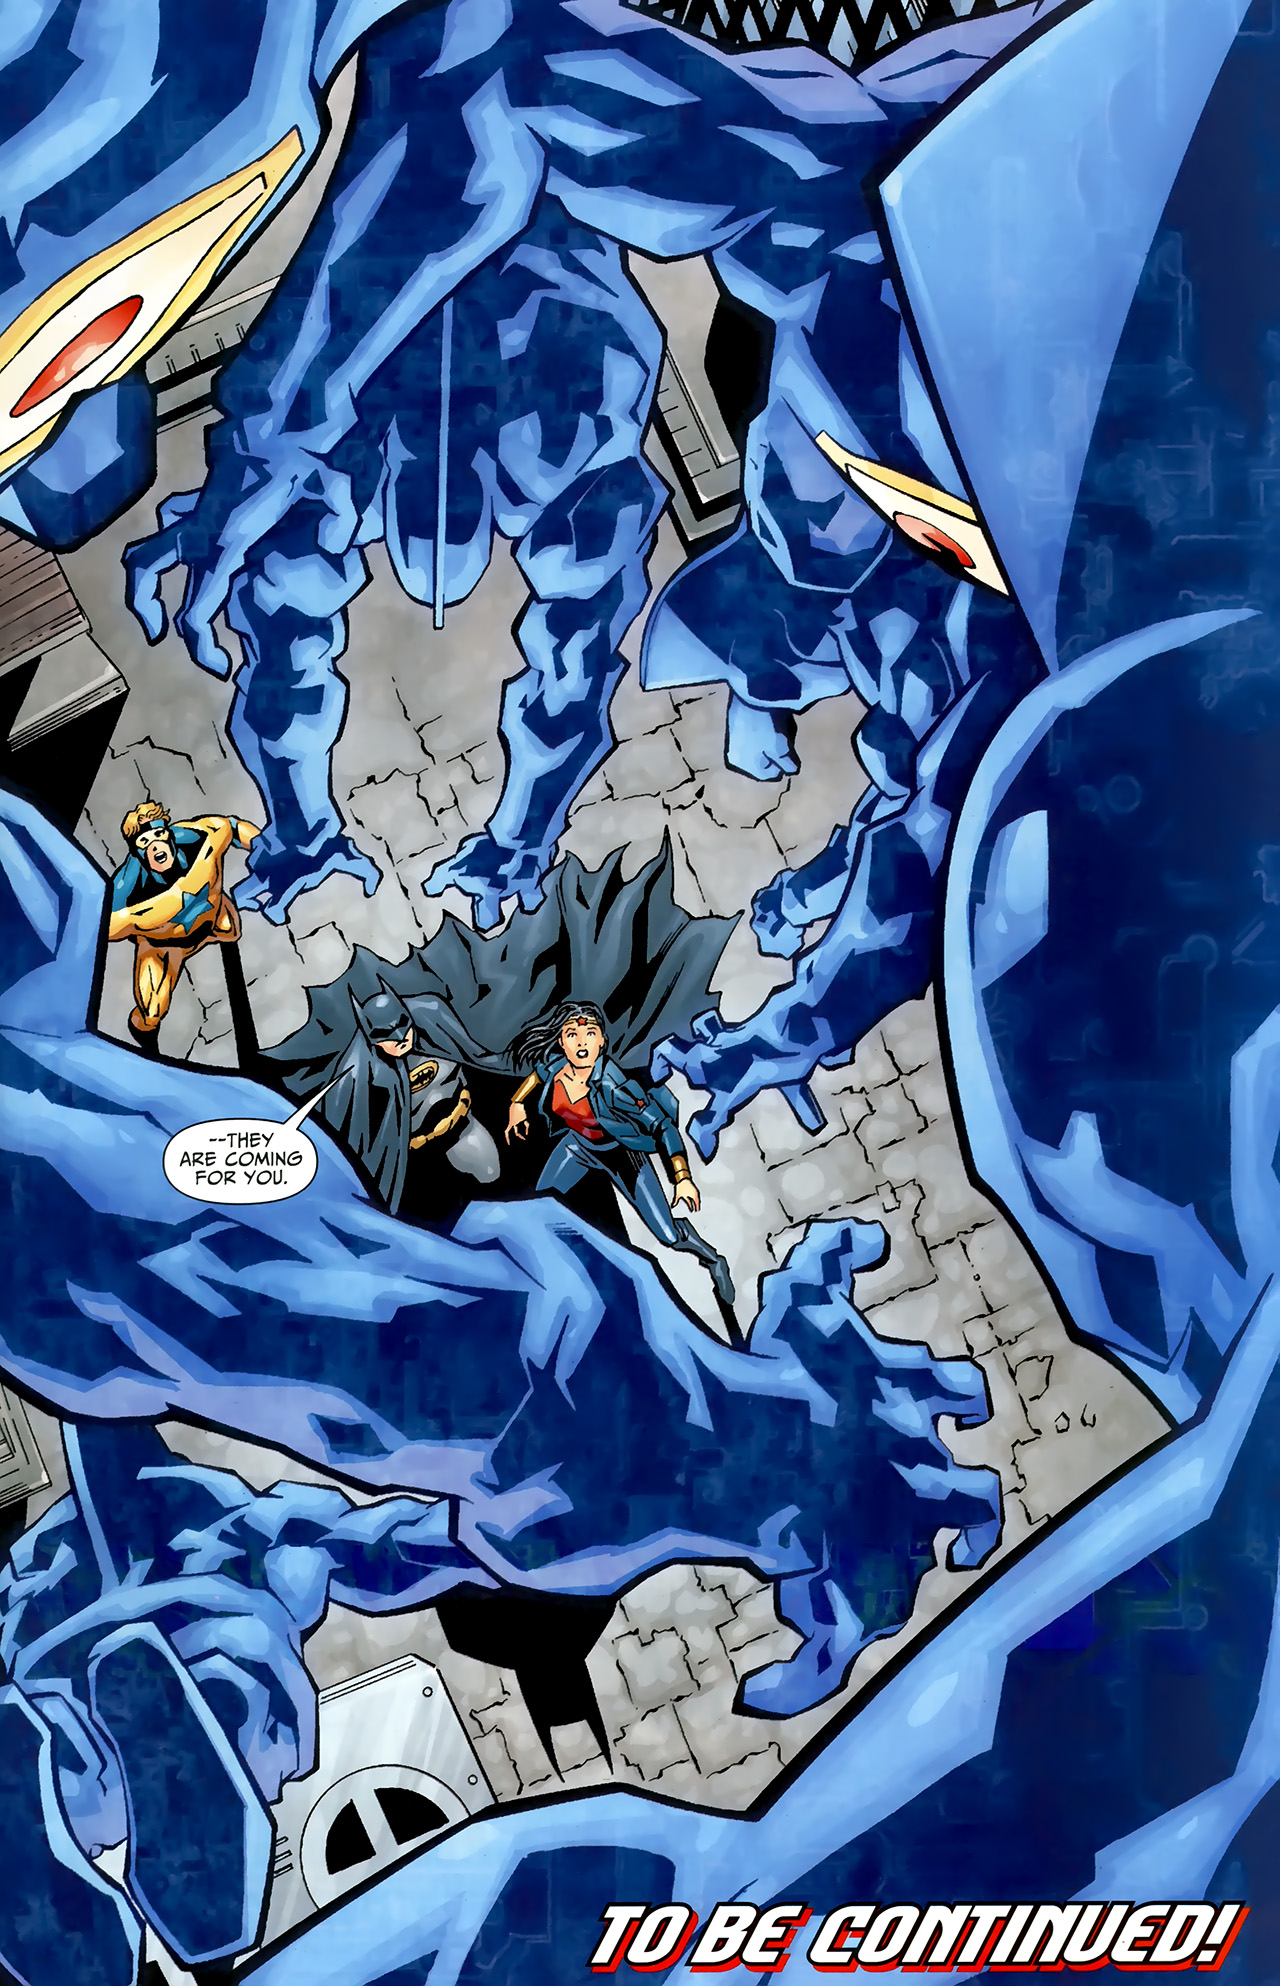 Read online Justice League: Generation Lost comic -  Issue #22 - 20